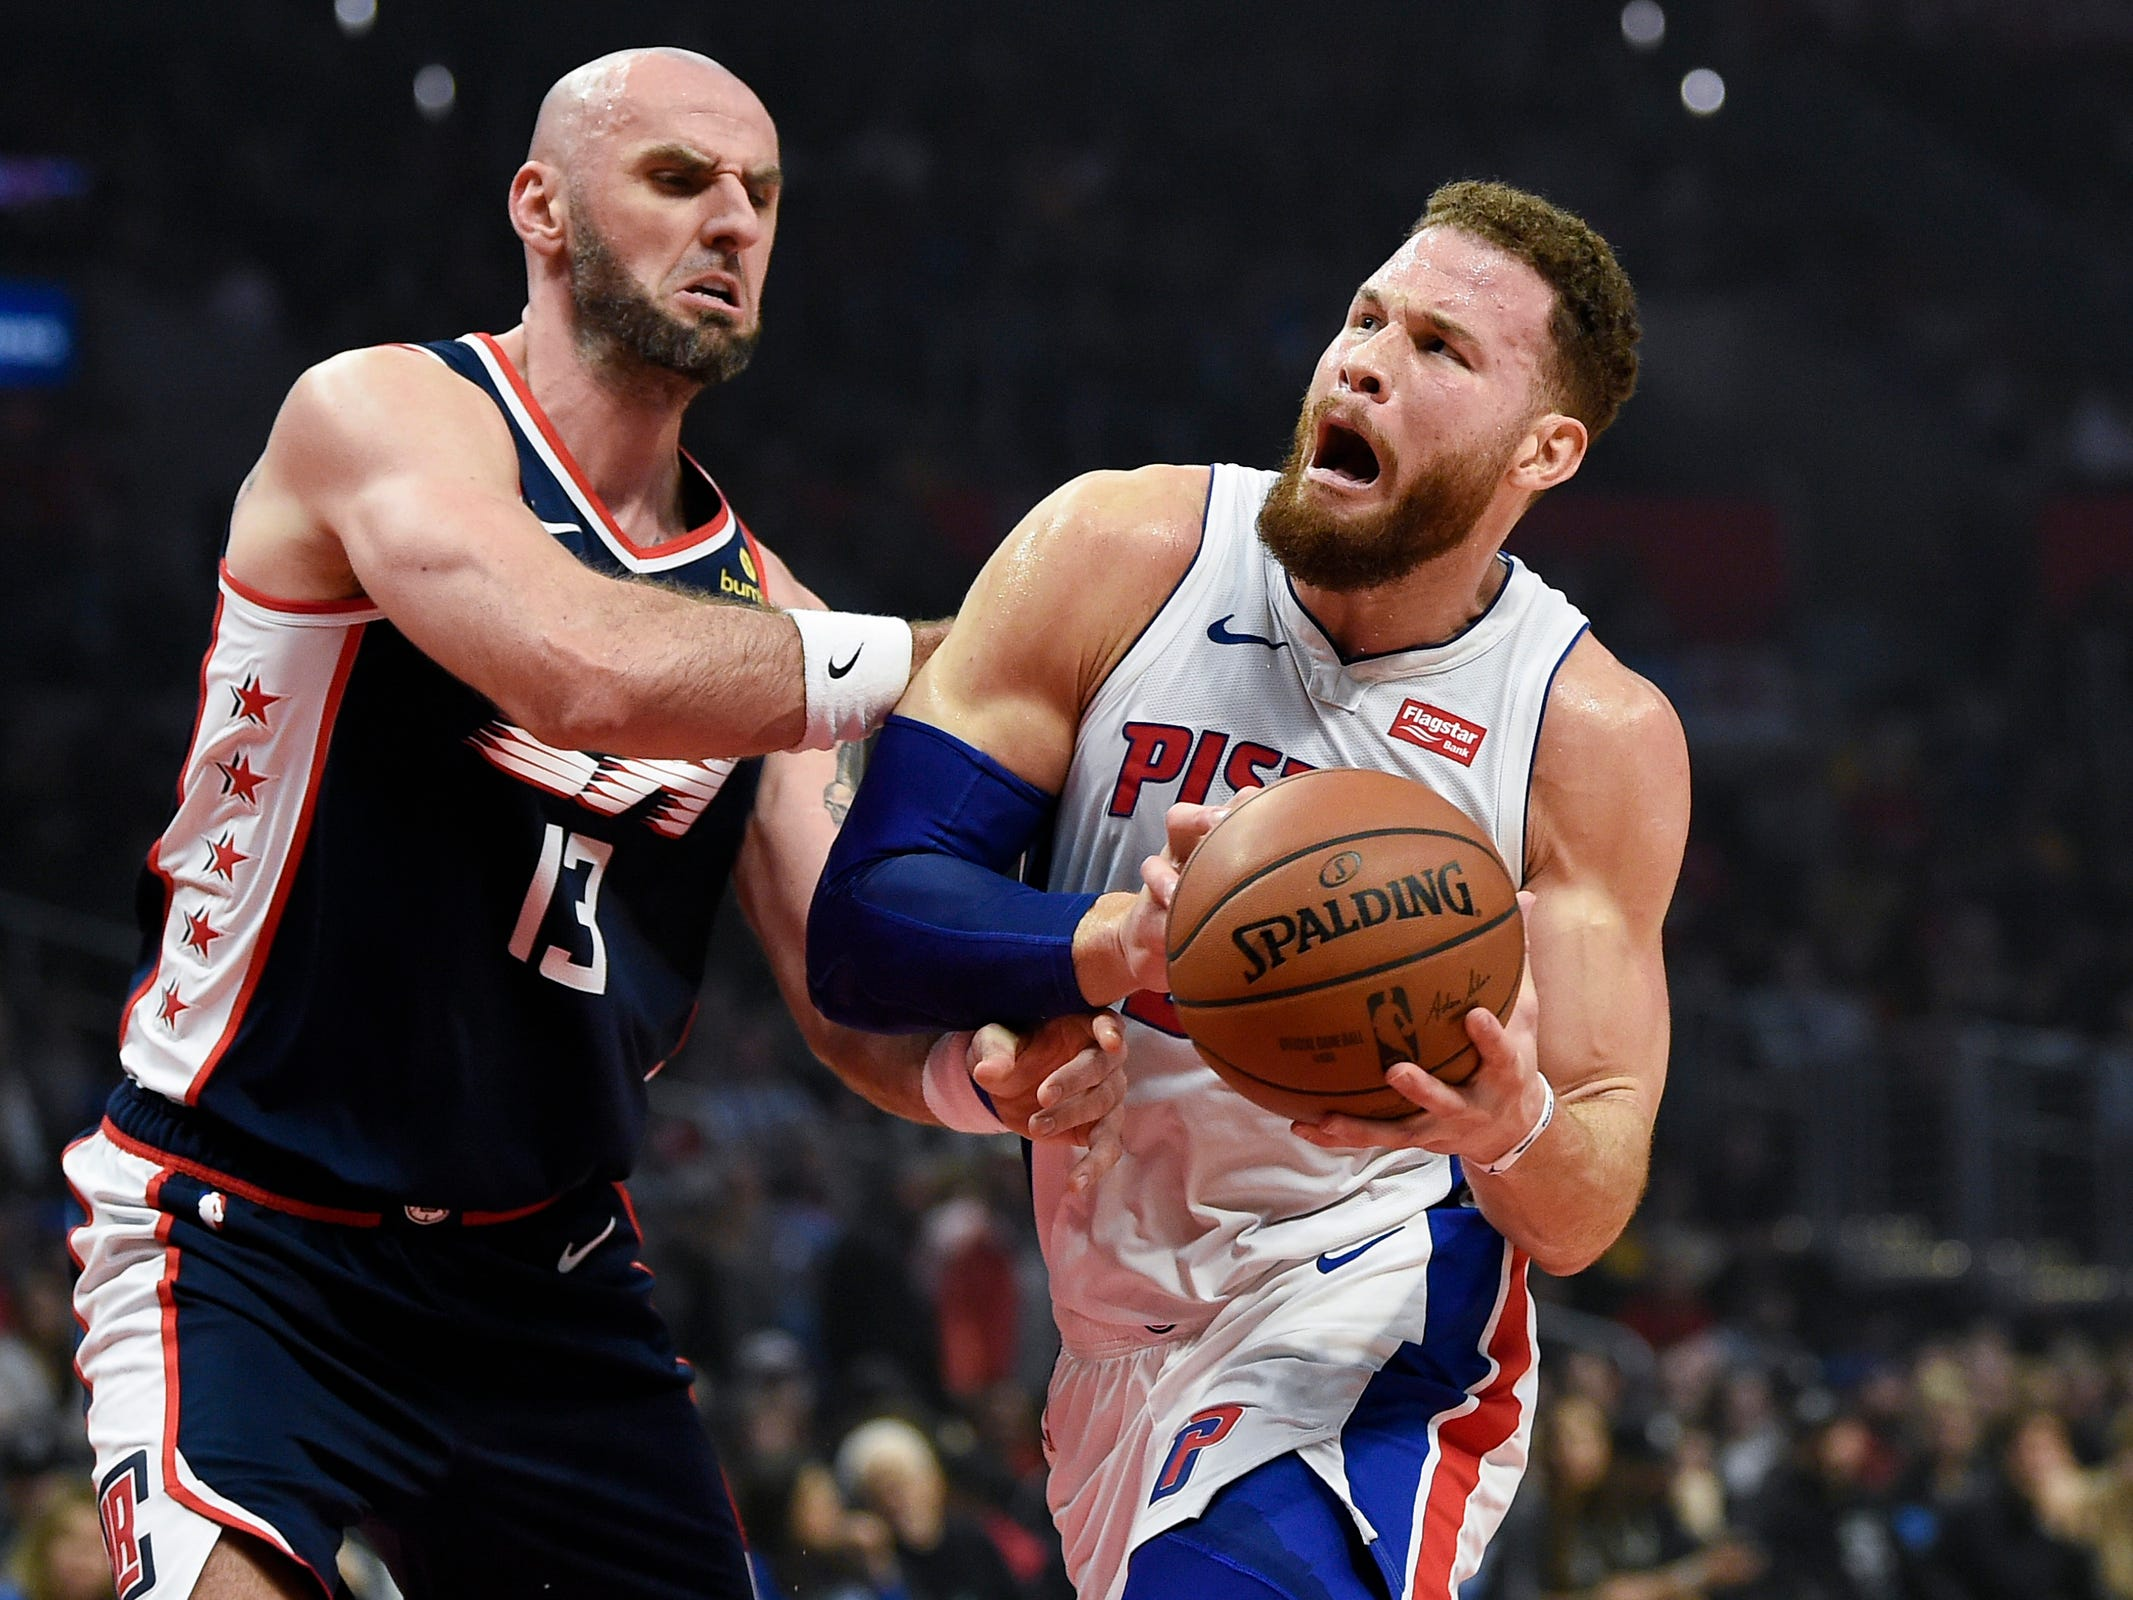 Detroit Pistons forward Blake Griffin drives to the basket while Los Angeles Clippers center Marcin Gortat defends during the first quarter at Staples Center, Jan. 12, 2019 in Los Angeles.